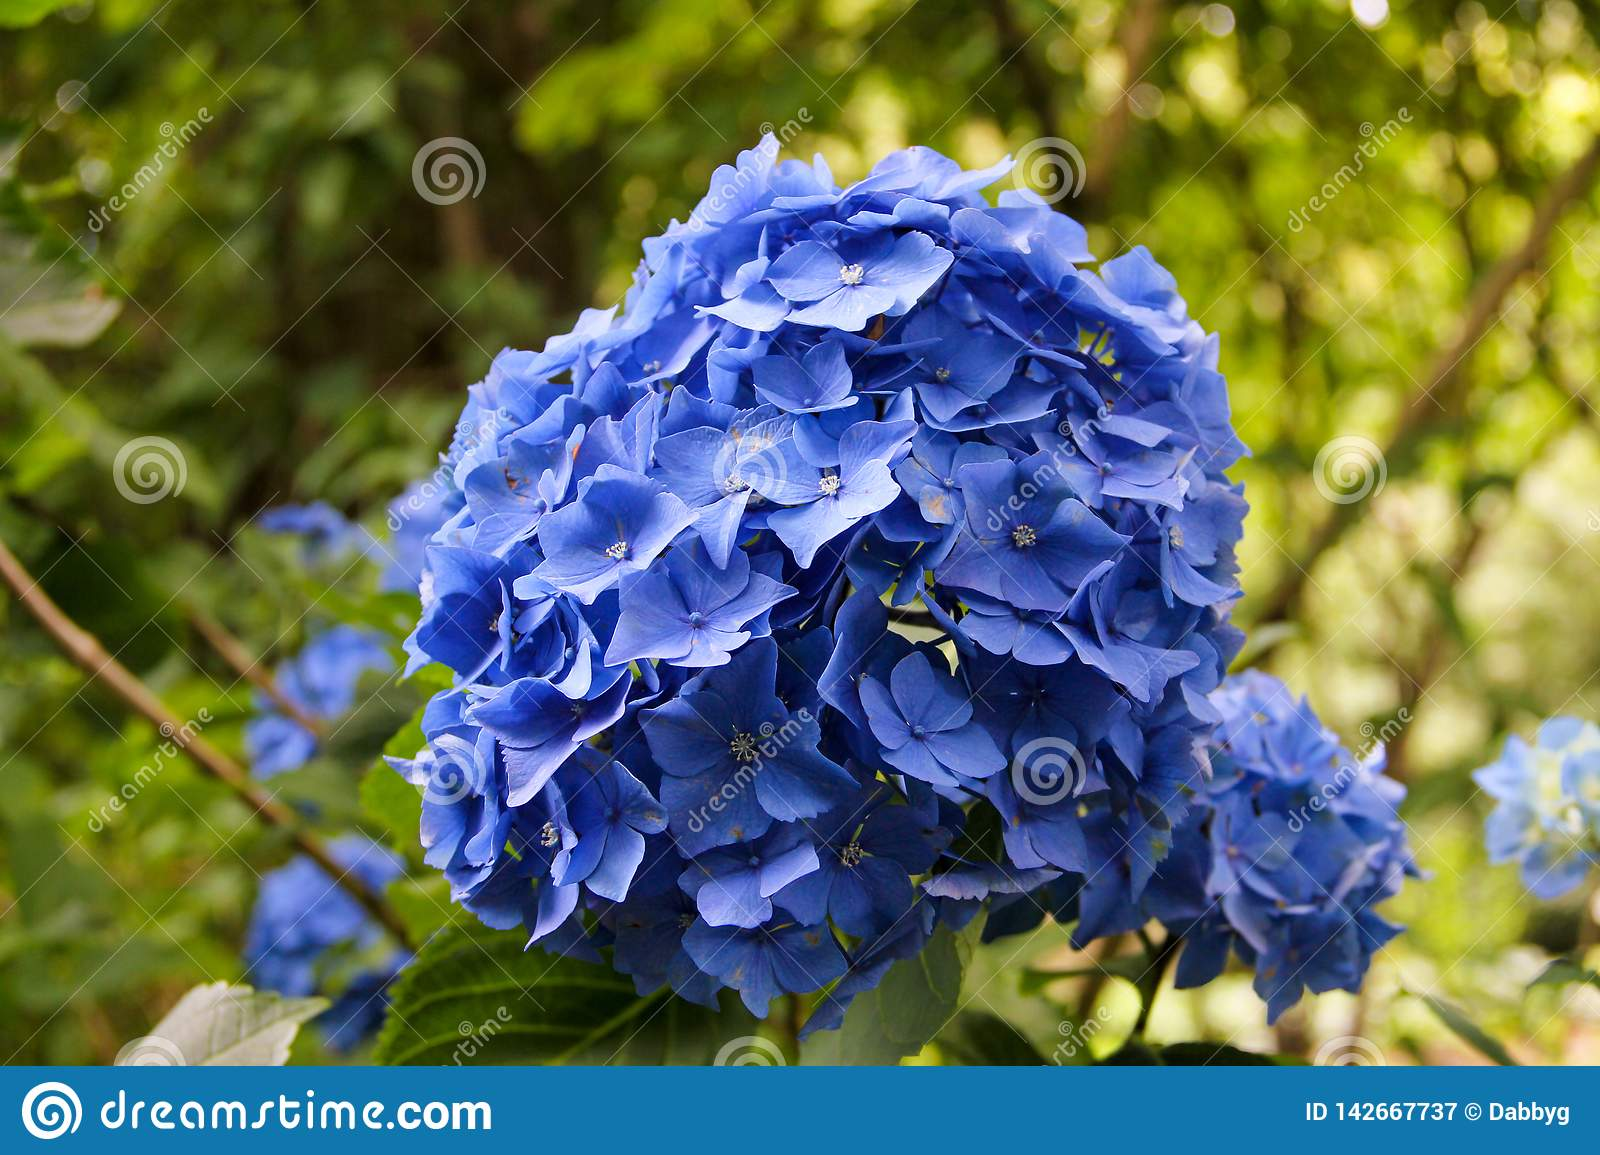 Blue Hydrangea in full bloom.